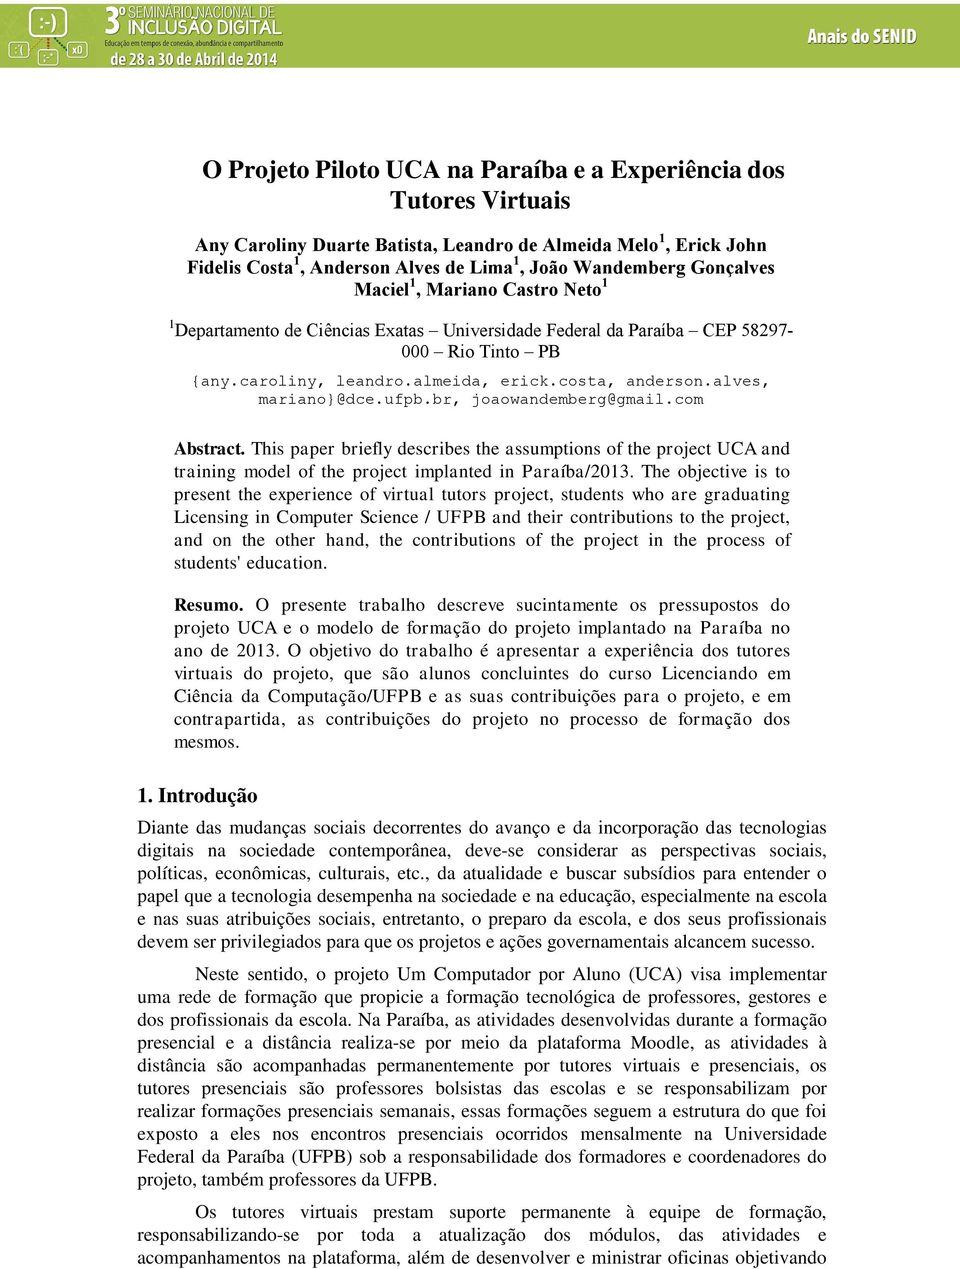 alves, mariano}@dce.ufpb.br, joaowandemberg@gmail.com Abstract. This paper briefly describes the assumptions of the project UCA and training model of the project implanted in Paraíba/2013.